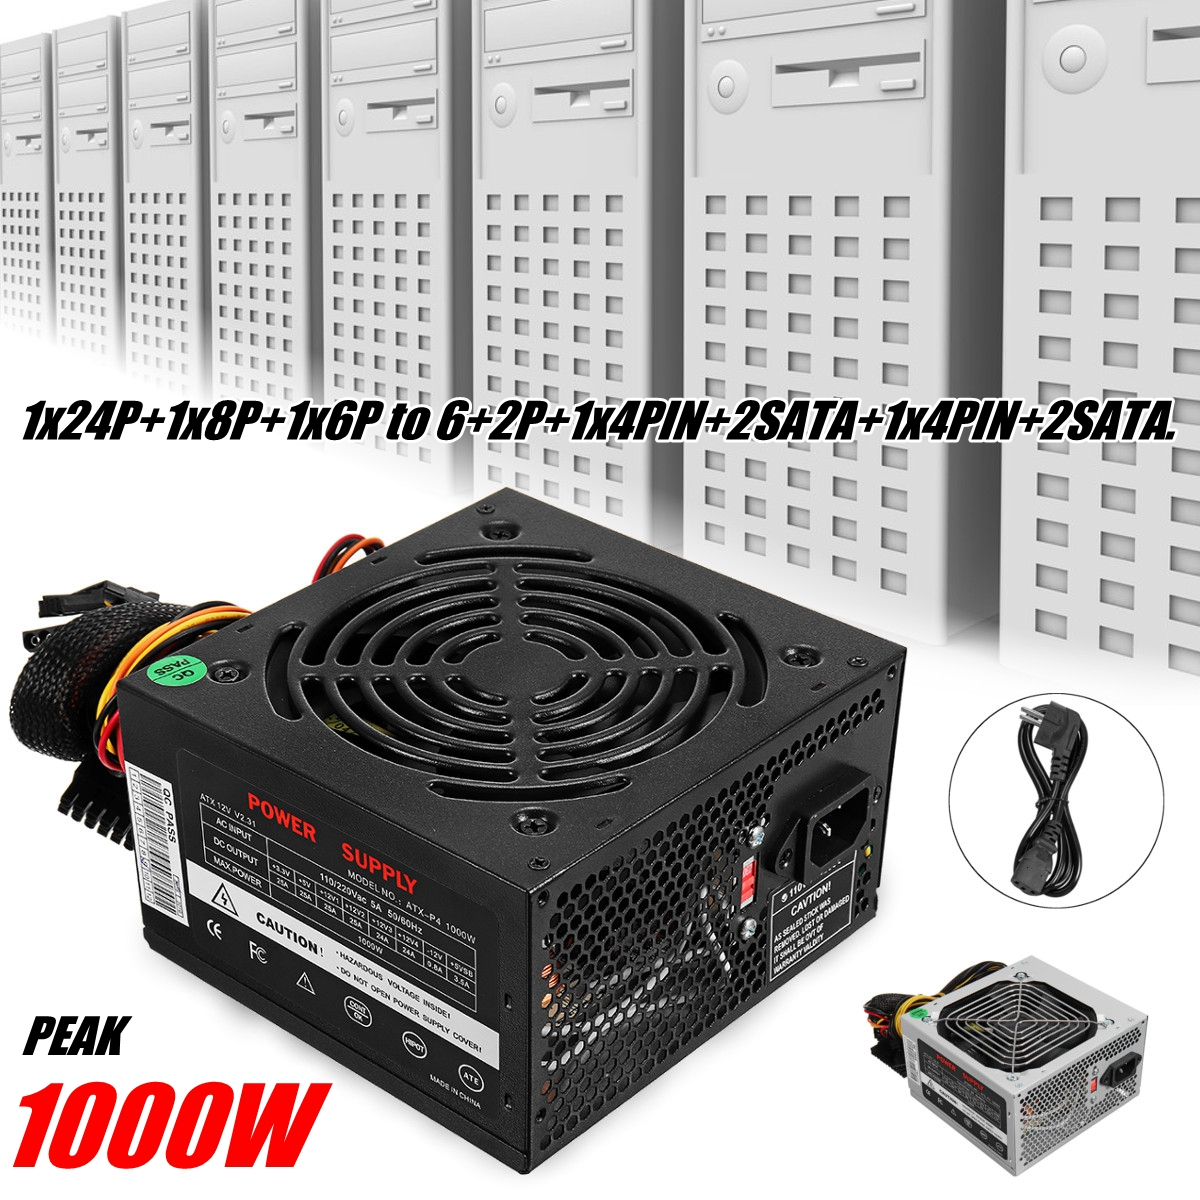 Max 1000W Power Supply PSU PFC Silent Fan ATX 24pin 12V PC Computer SATA Gaming PC Power Supply For Intel AMD Computer silver max 500w psu pfc atx 12v 24pin sata gaming pc power supply for intel amd computer power supply for btc